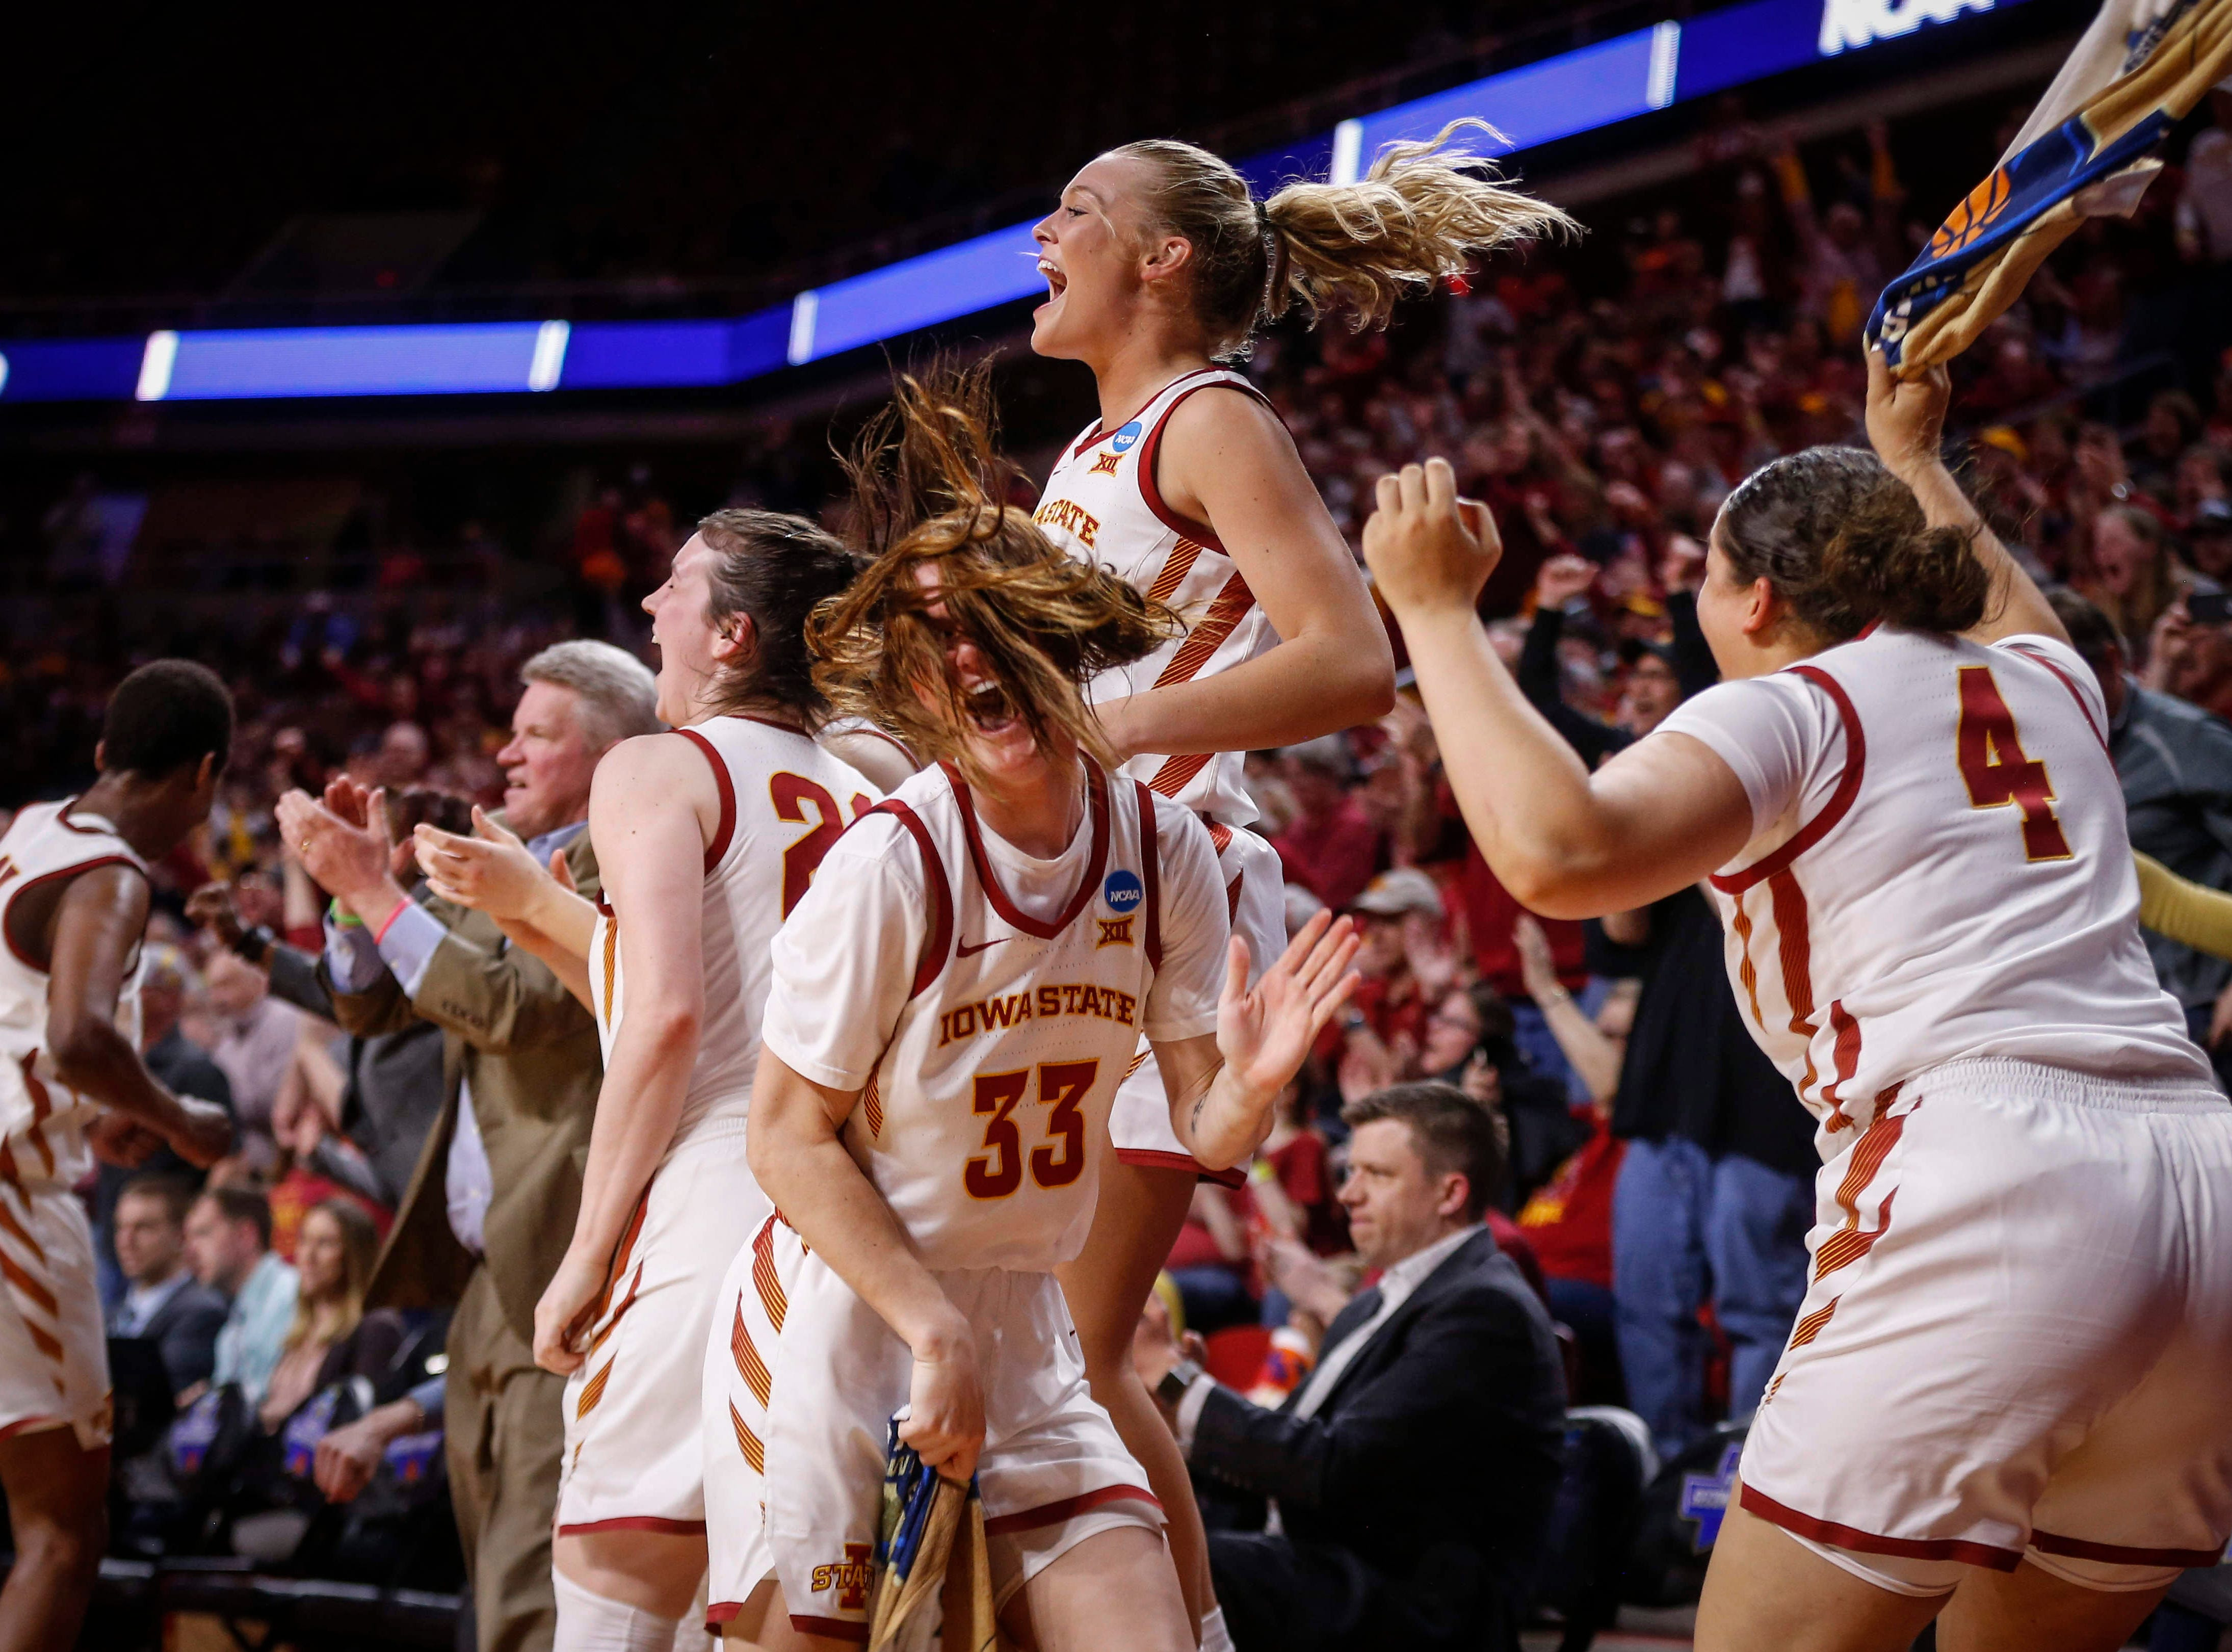 Members of the Iowa State women's basketball team celebrate a NCAA first round win against New Mexico State on Saturday, March 23, 2019, at Hilton Coliseum in Ames.